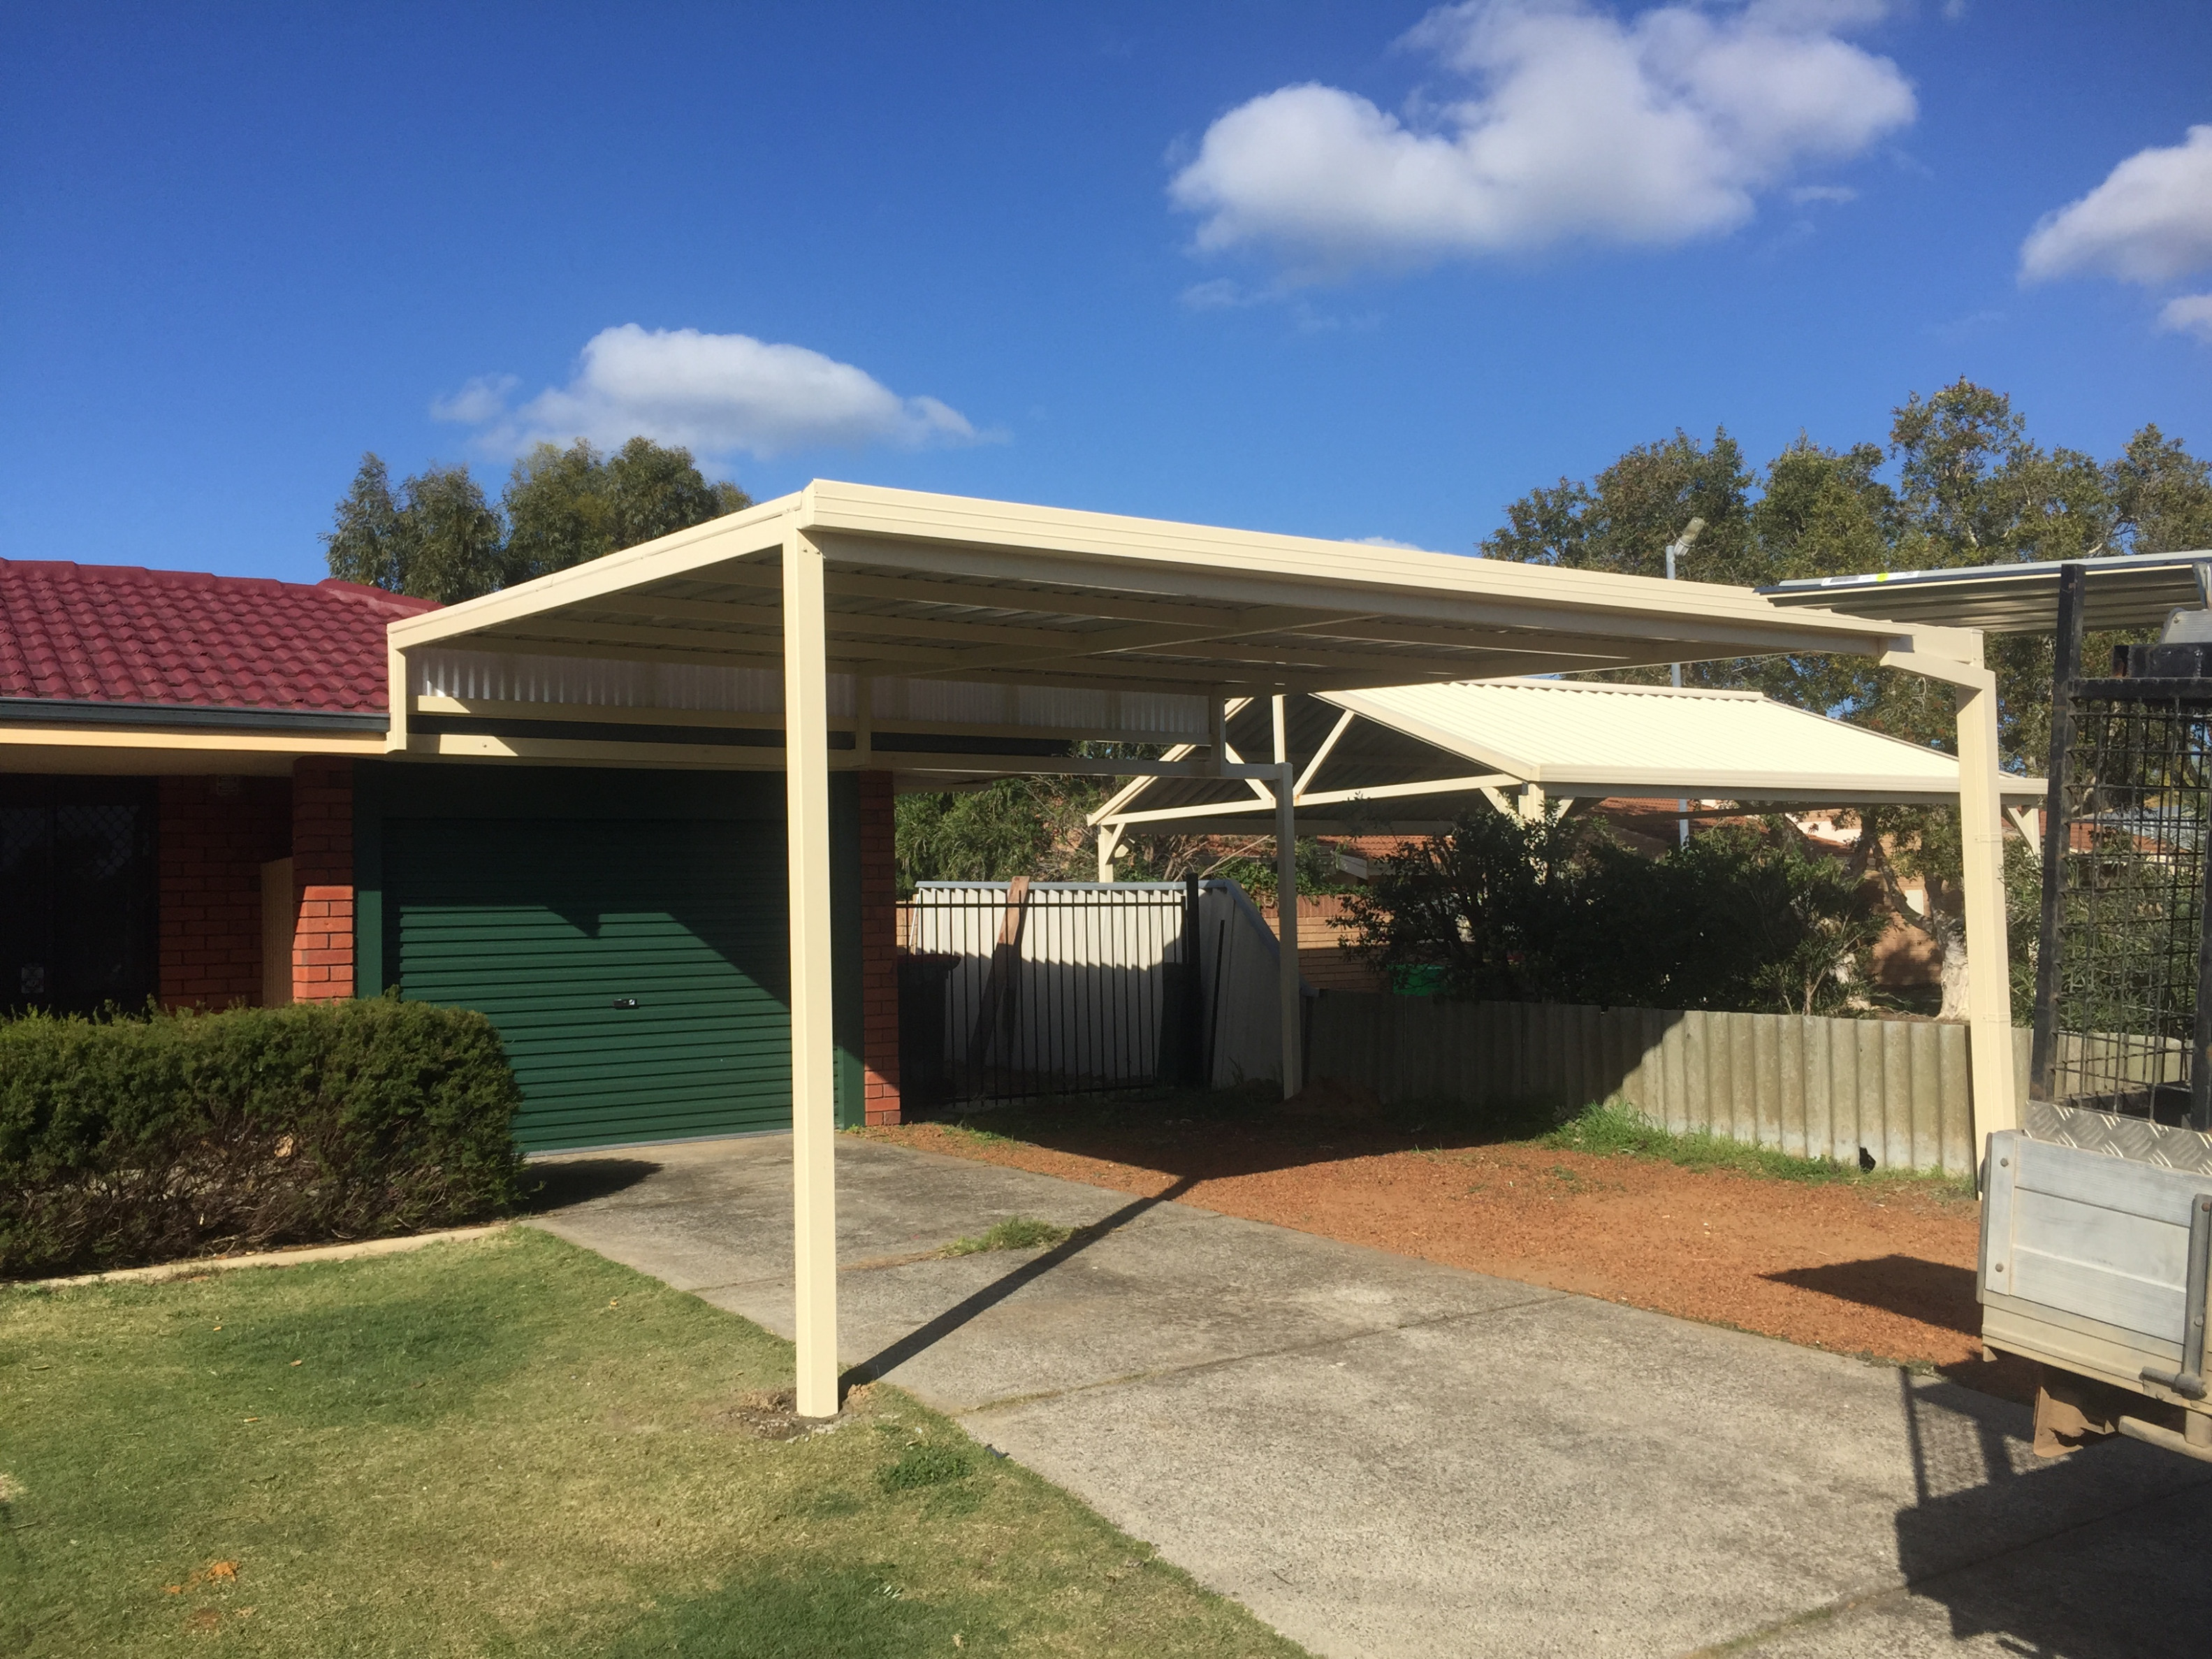 How Close To The Boundary Can I Build My Carport? Carport Roof Build